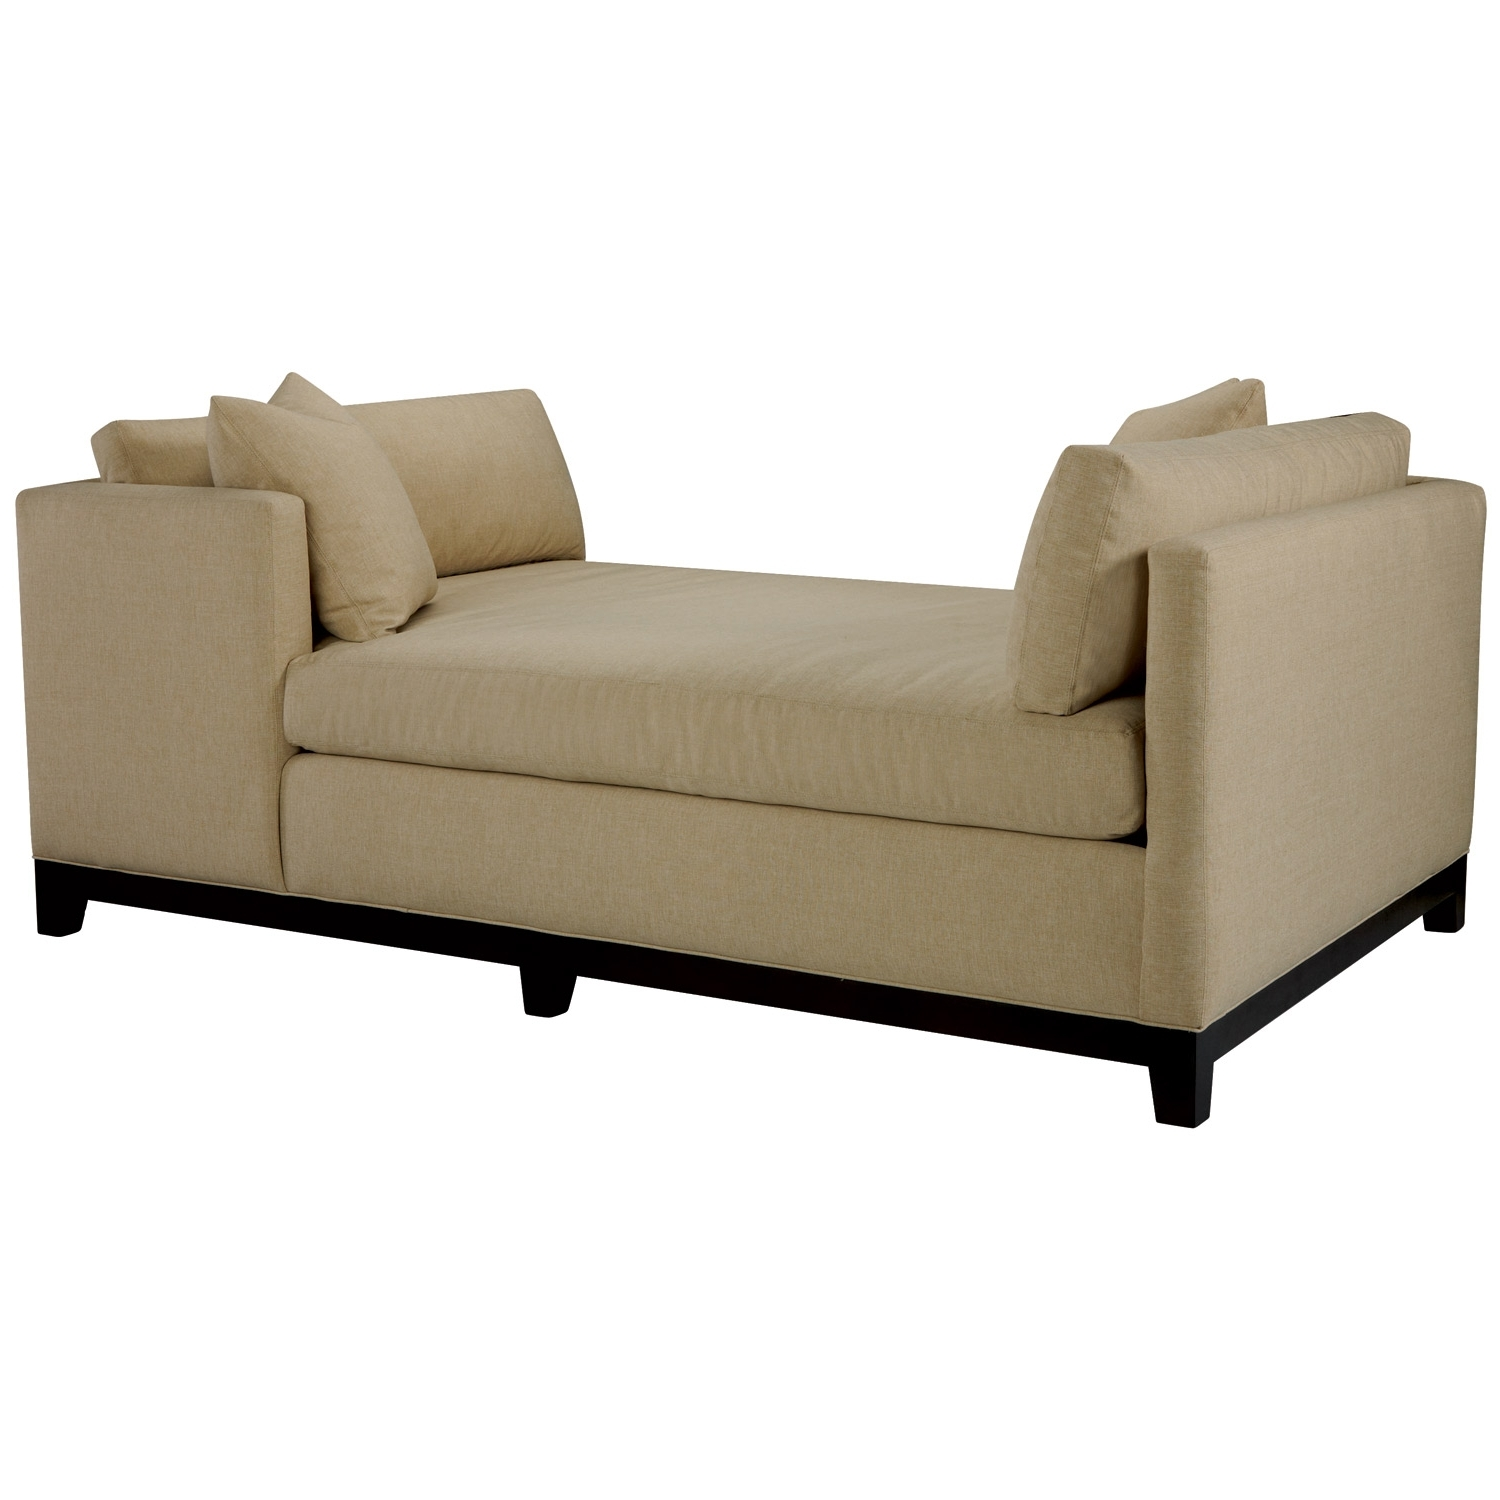 Cheap Chaise Lounge Throughout High End Chaise Lounge Chairs (View 6 of 15)